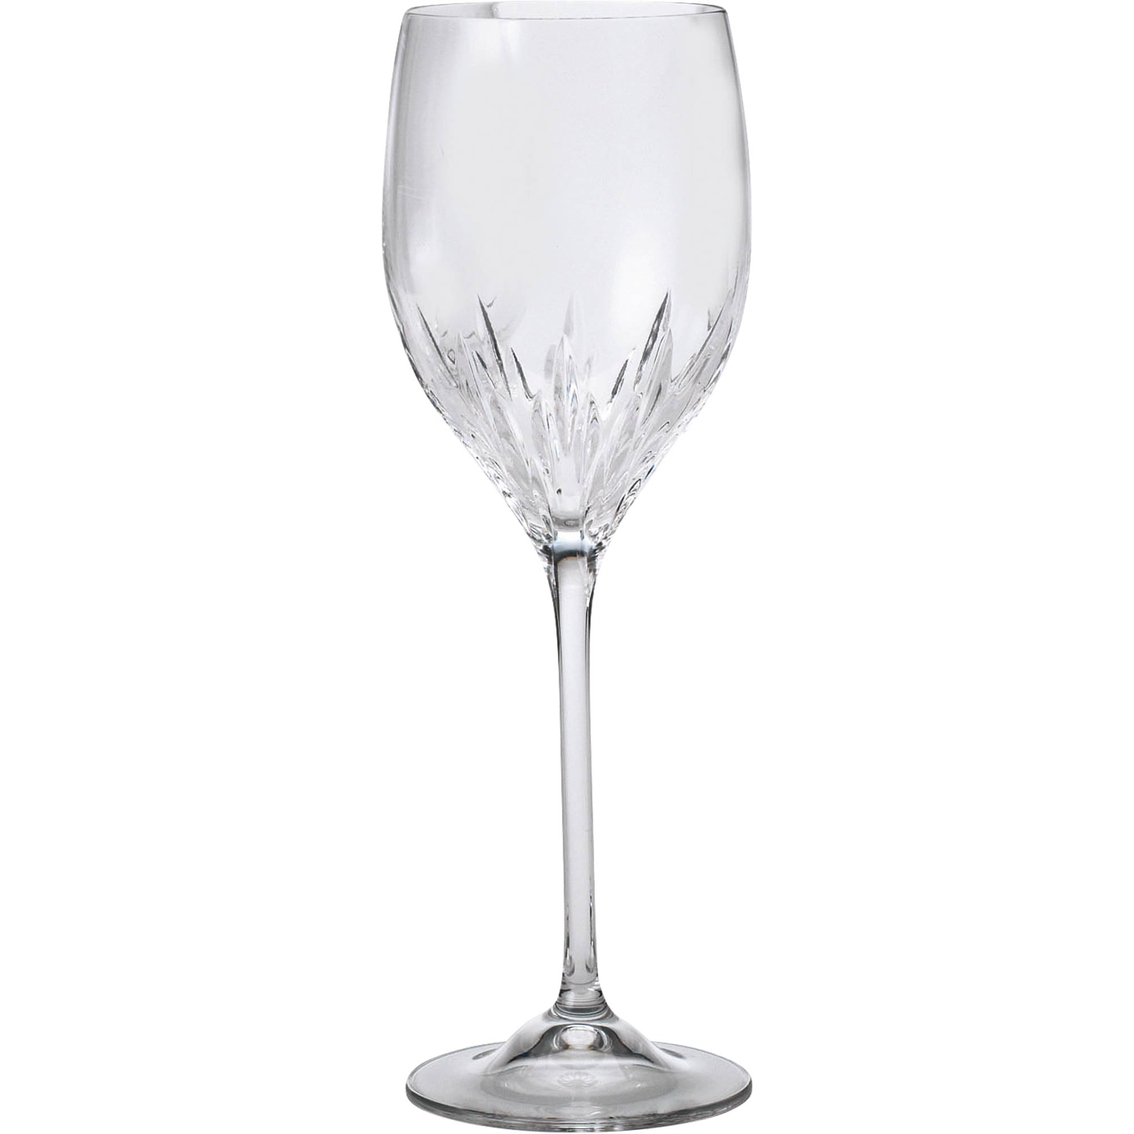 Vera wang wedgwood duchesse wine glass everyday glassware home appliances shop the exchange - Vera wang duchesse wine glasses ...